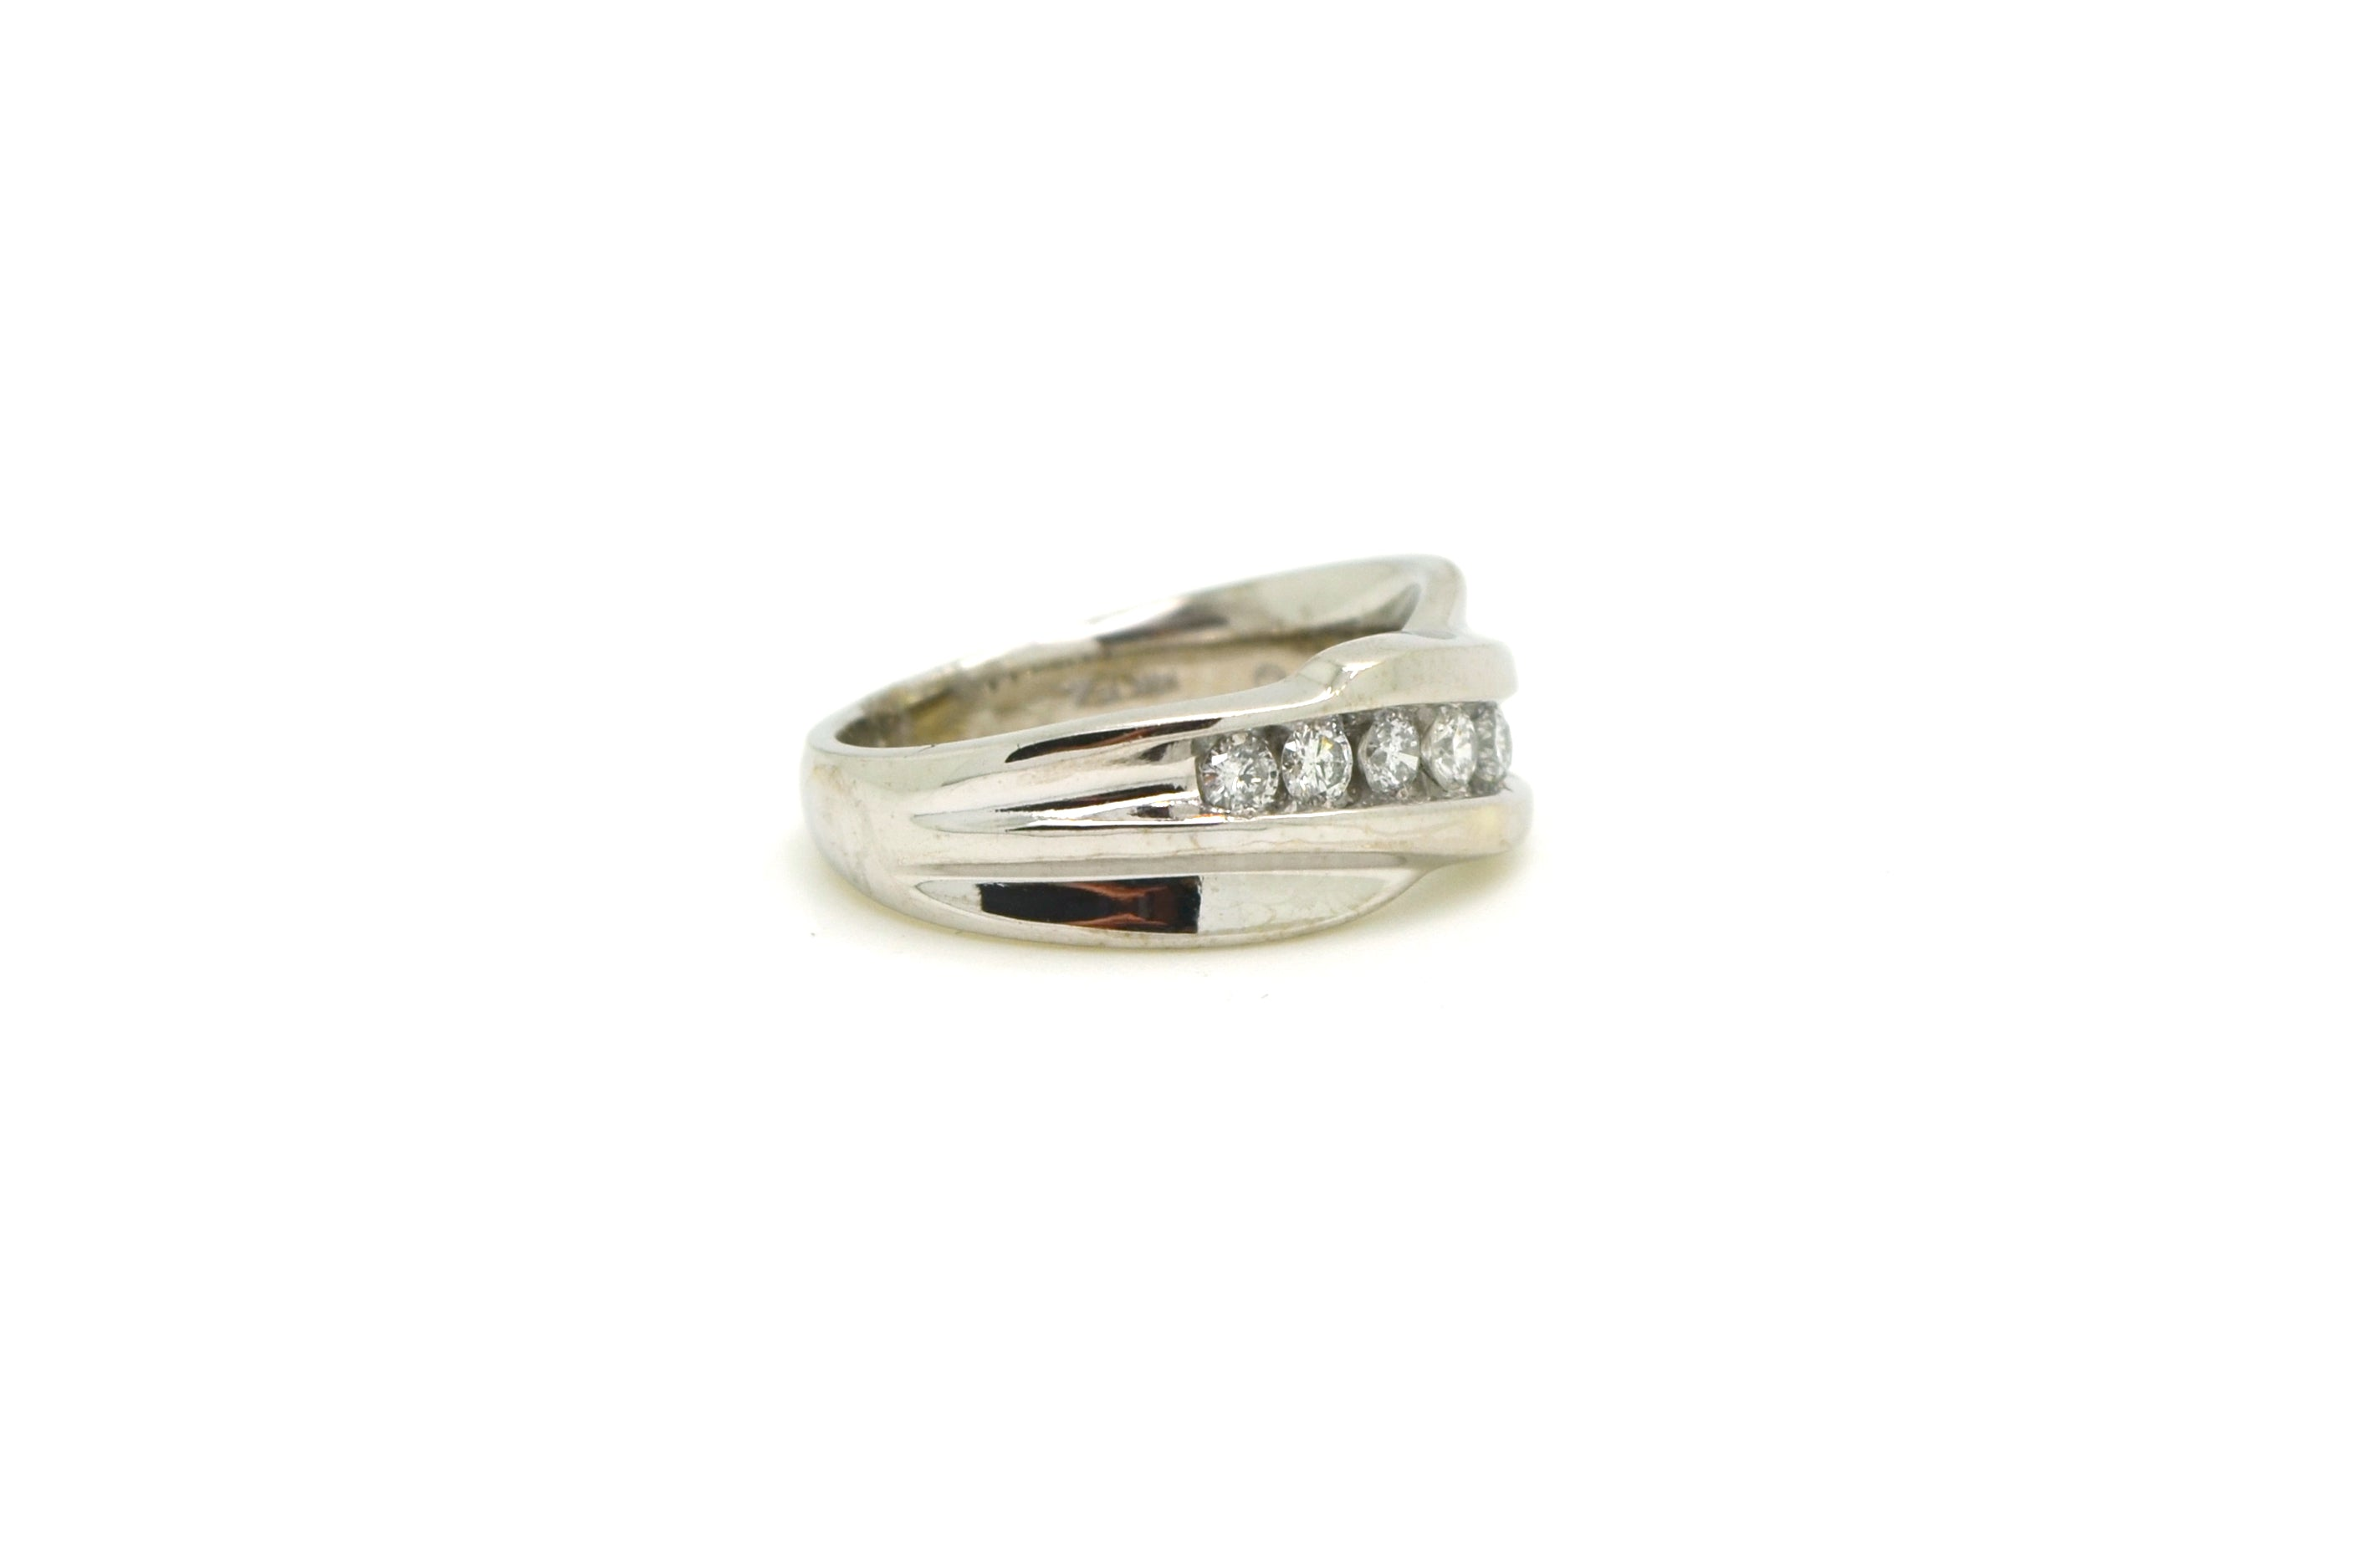 14k White Gold Round Seven Stone Diamond Band Ring - 1.00 ct. total - Size 7.5